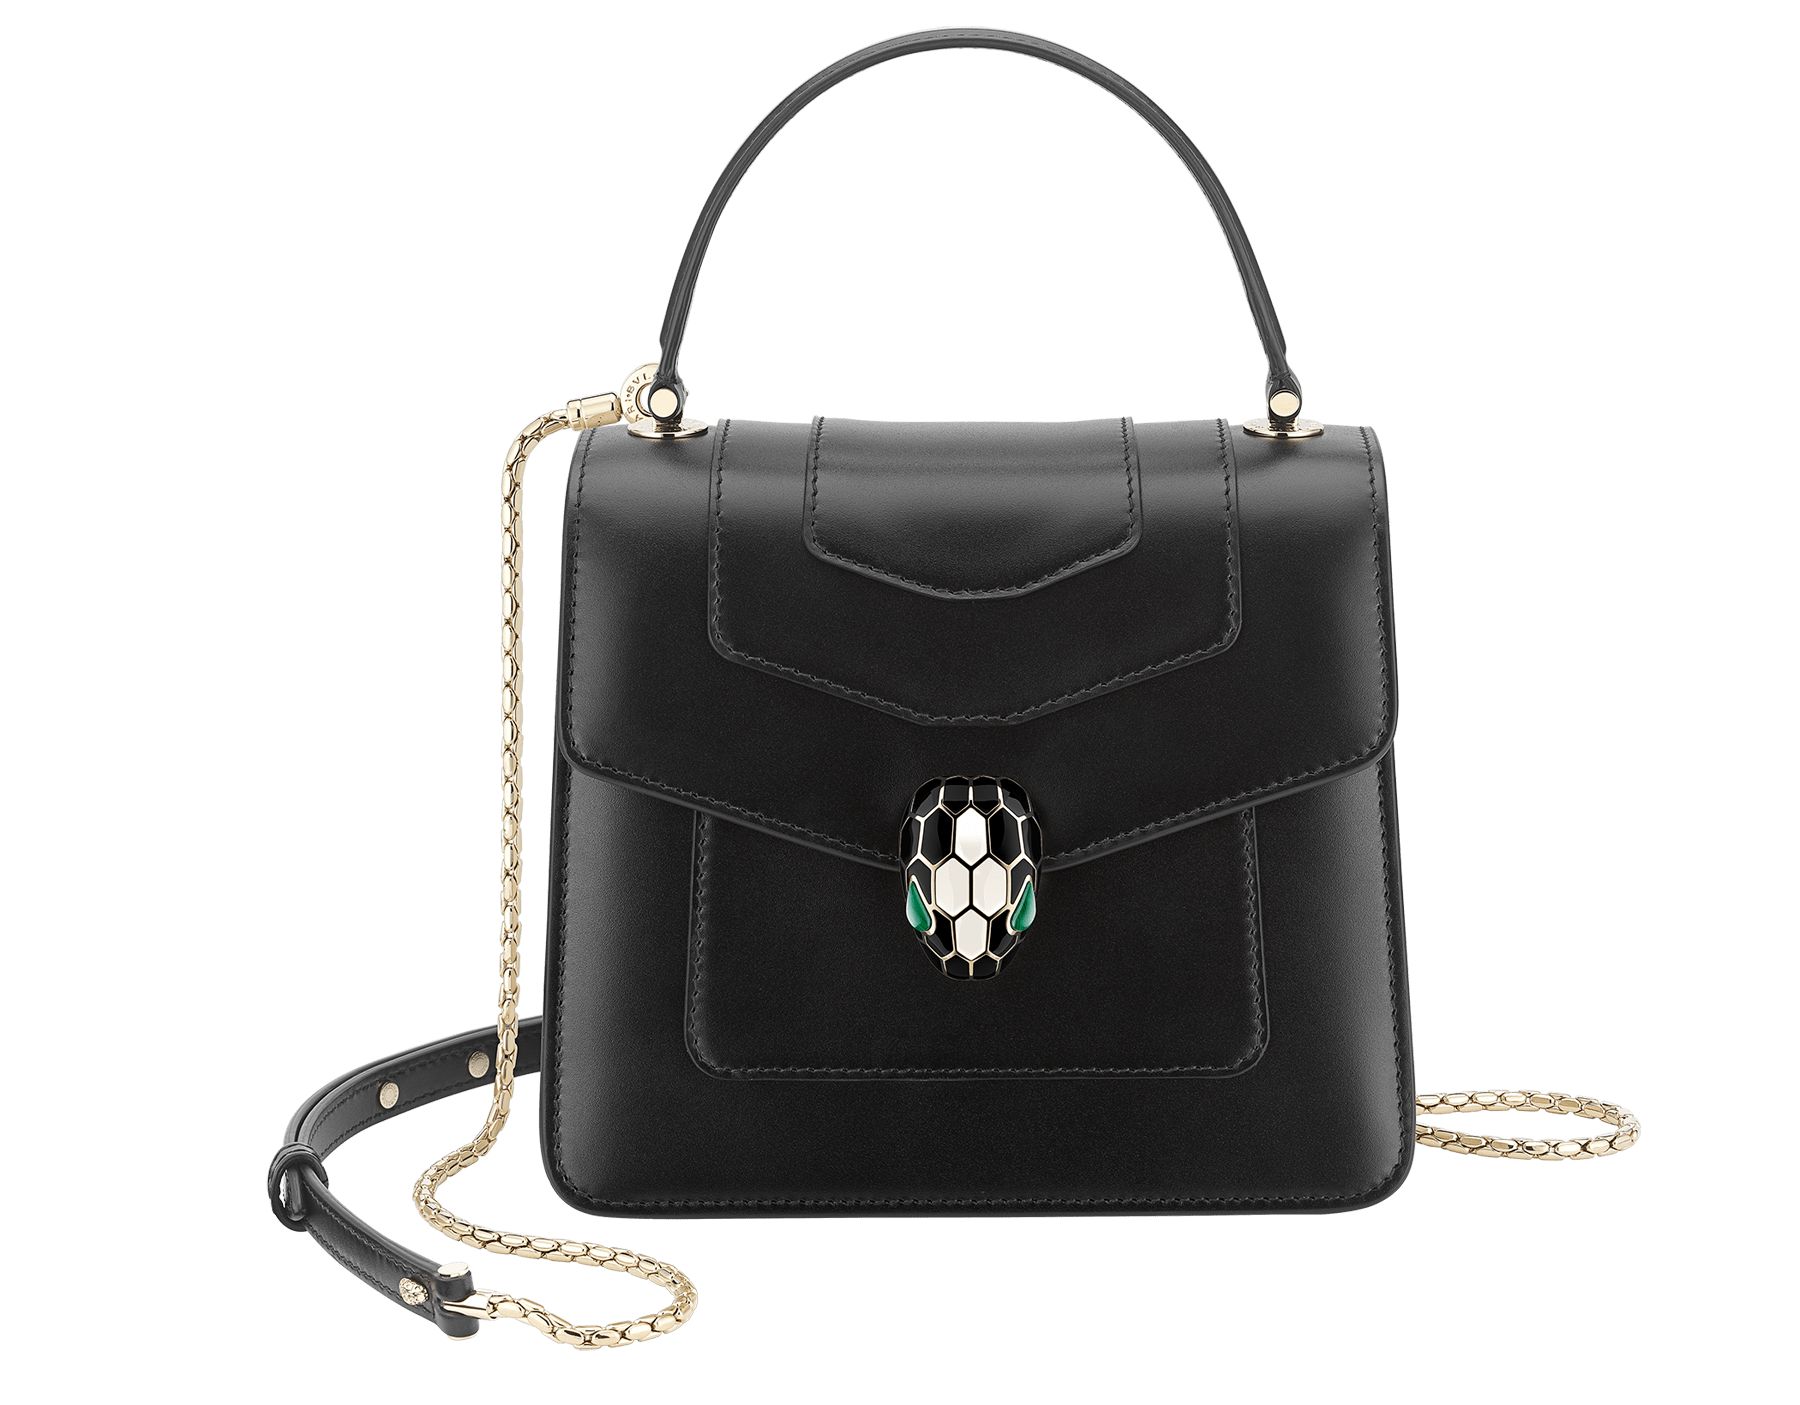 """""""Serpenti Forever"""" top-handle bag in black calfskin with emerald-green grosgrain inner lining. Iconic snakehead closure in light gold-plated brass embellished with black and agate-white enamel and green malachite eyes 1122-CLa image 1"""